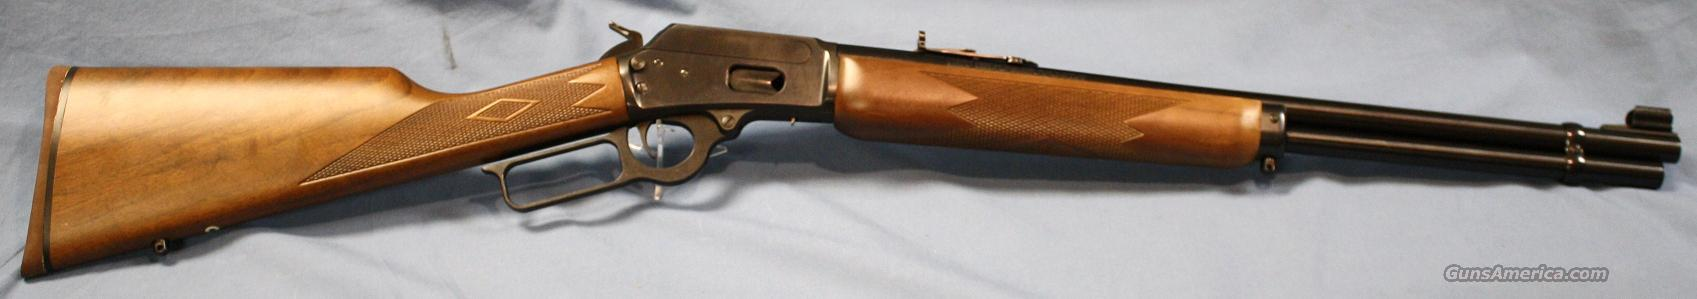 Marlin 1894 Lever Action Rifle Custom 44-40  Guns > Rifles > Marlin Rifles > Modern > Lever Action